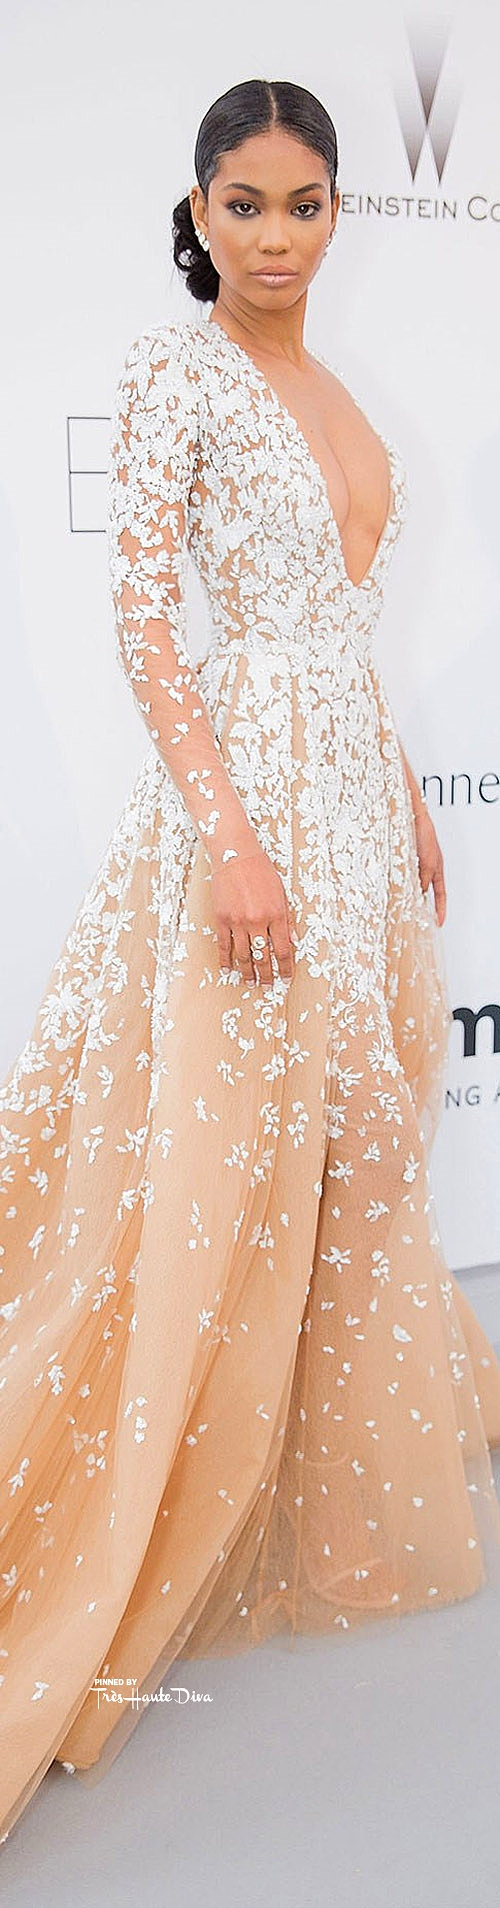 Chanel Iman in Zuhair Murad Couture               vogue.uk.com/ Getty